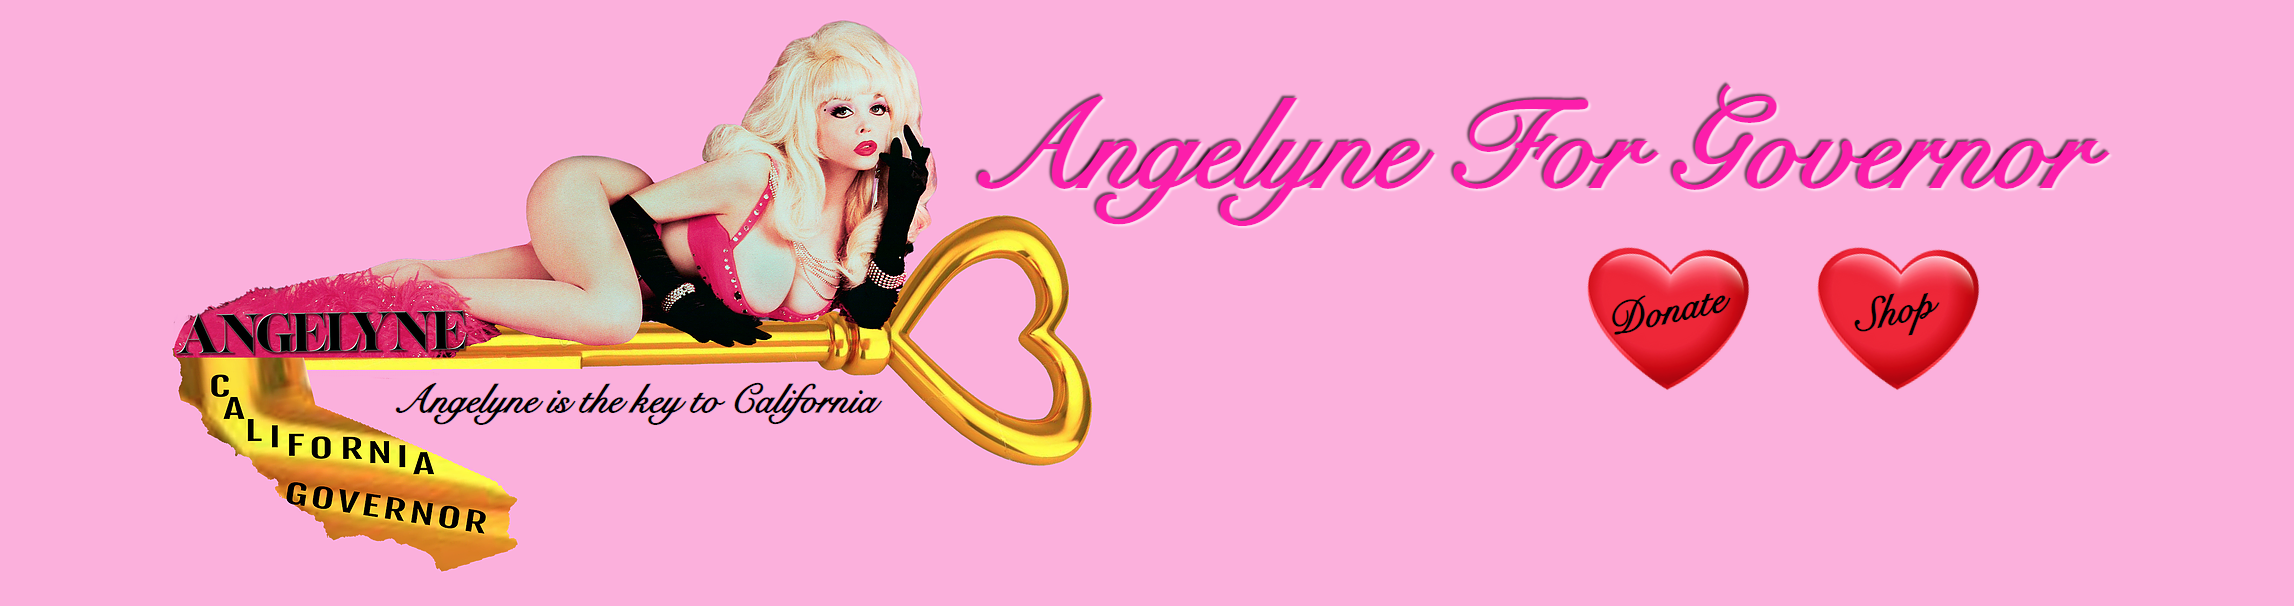 angelyne for governor